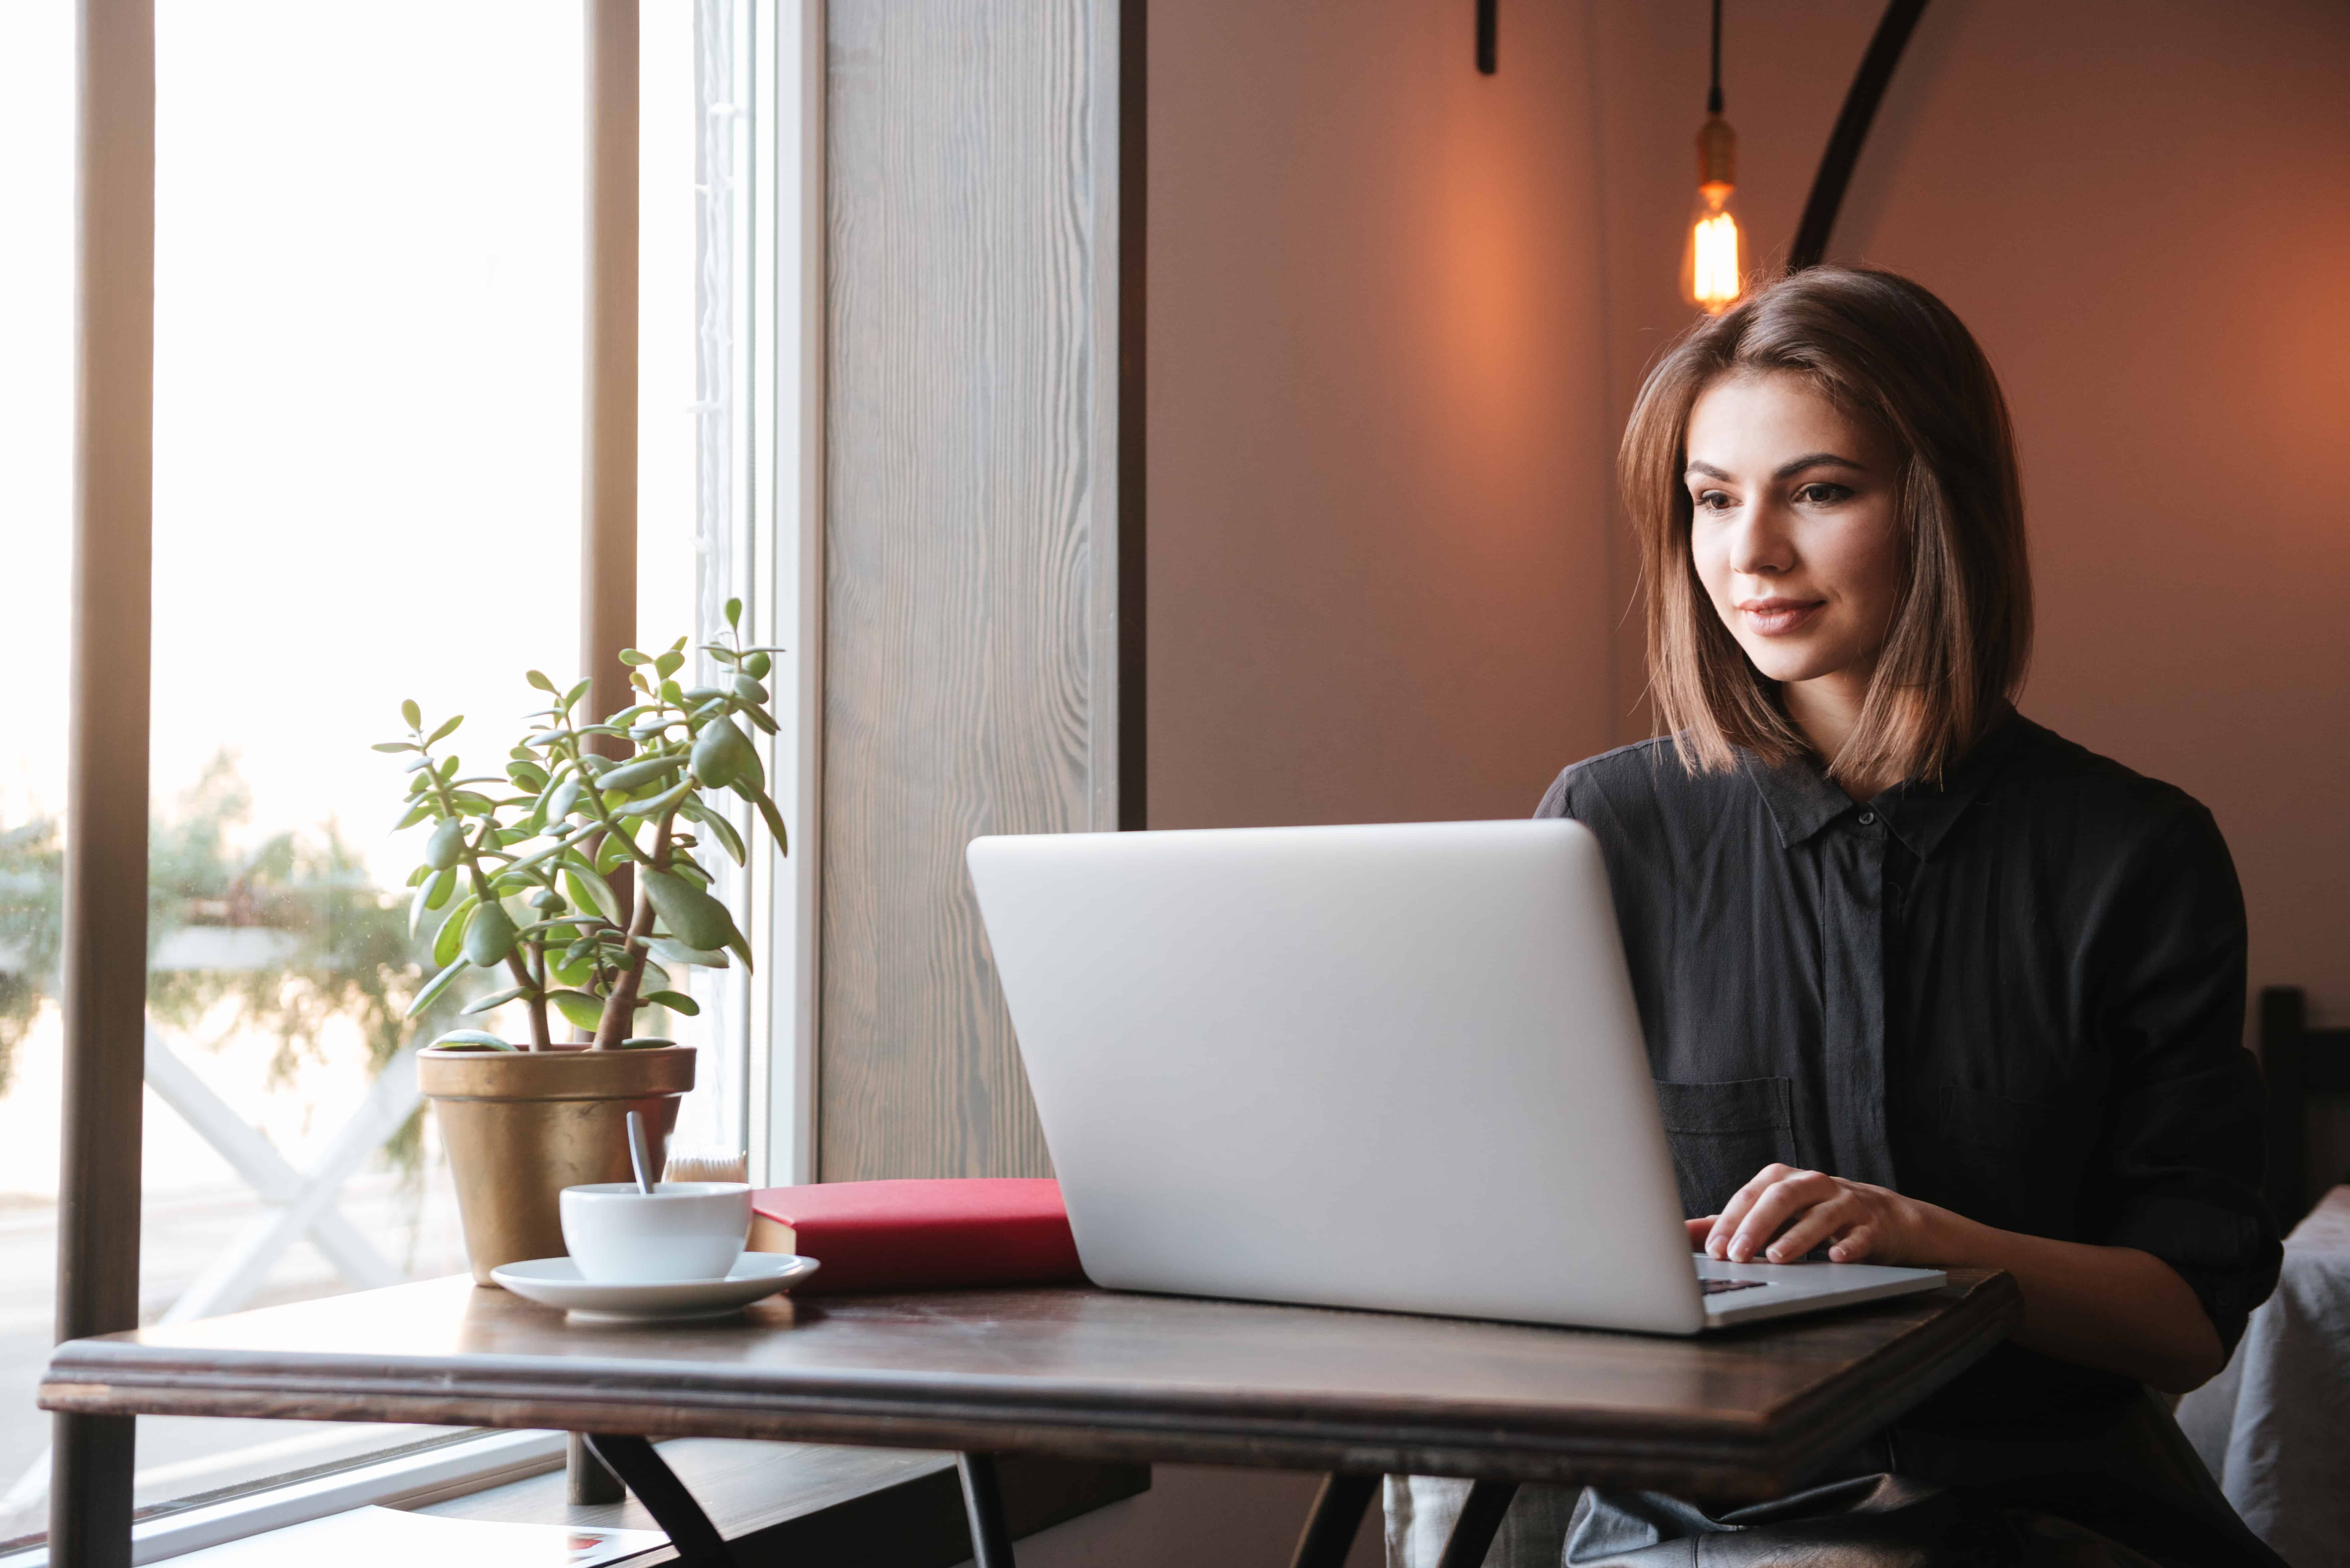 Work at Home Proofreading Jobs with Cambridge Transcriptions